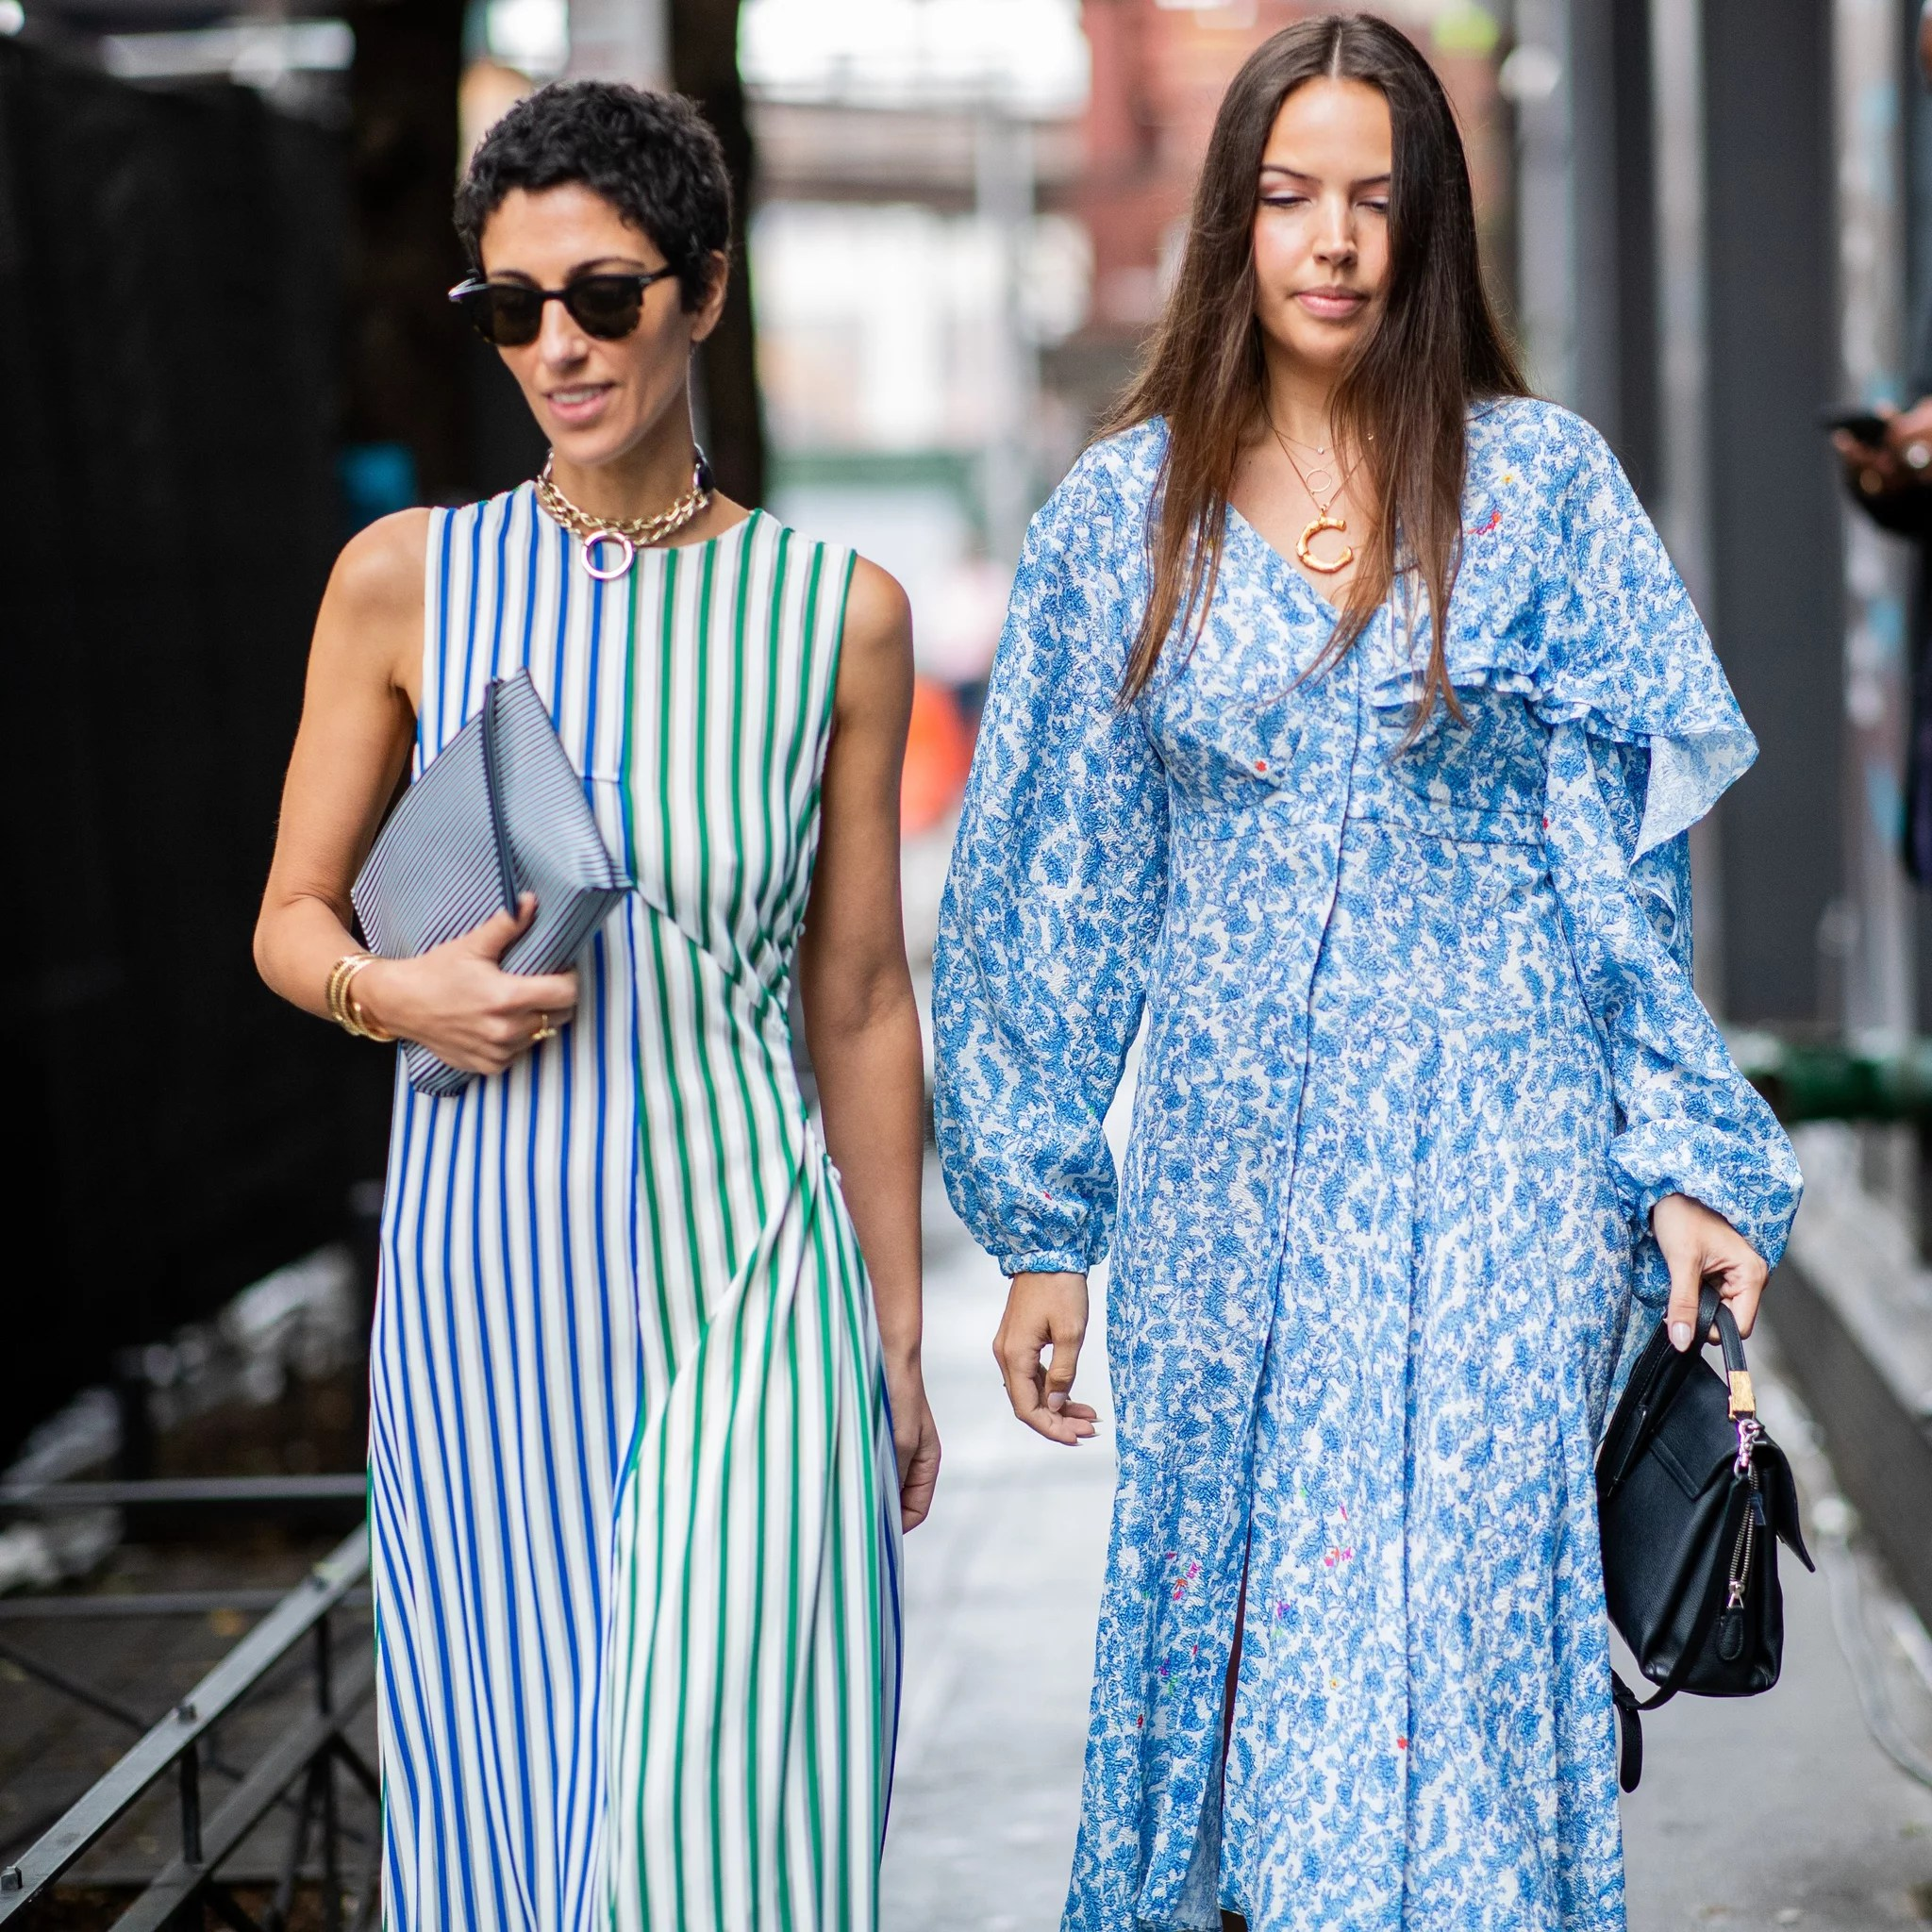 Best Day Dresses From Amazon   POPSUGAR Fashion